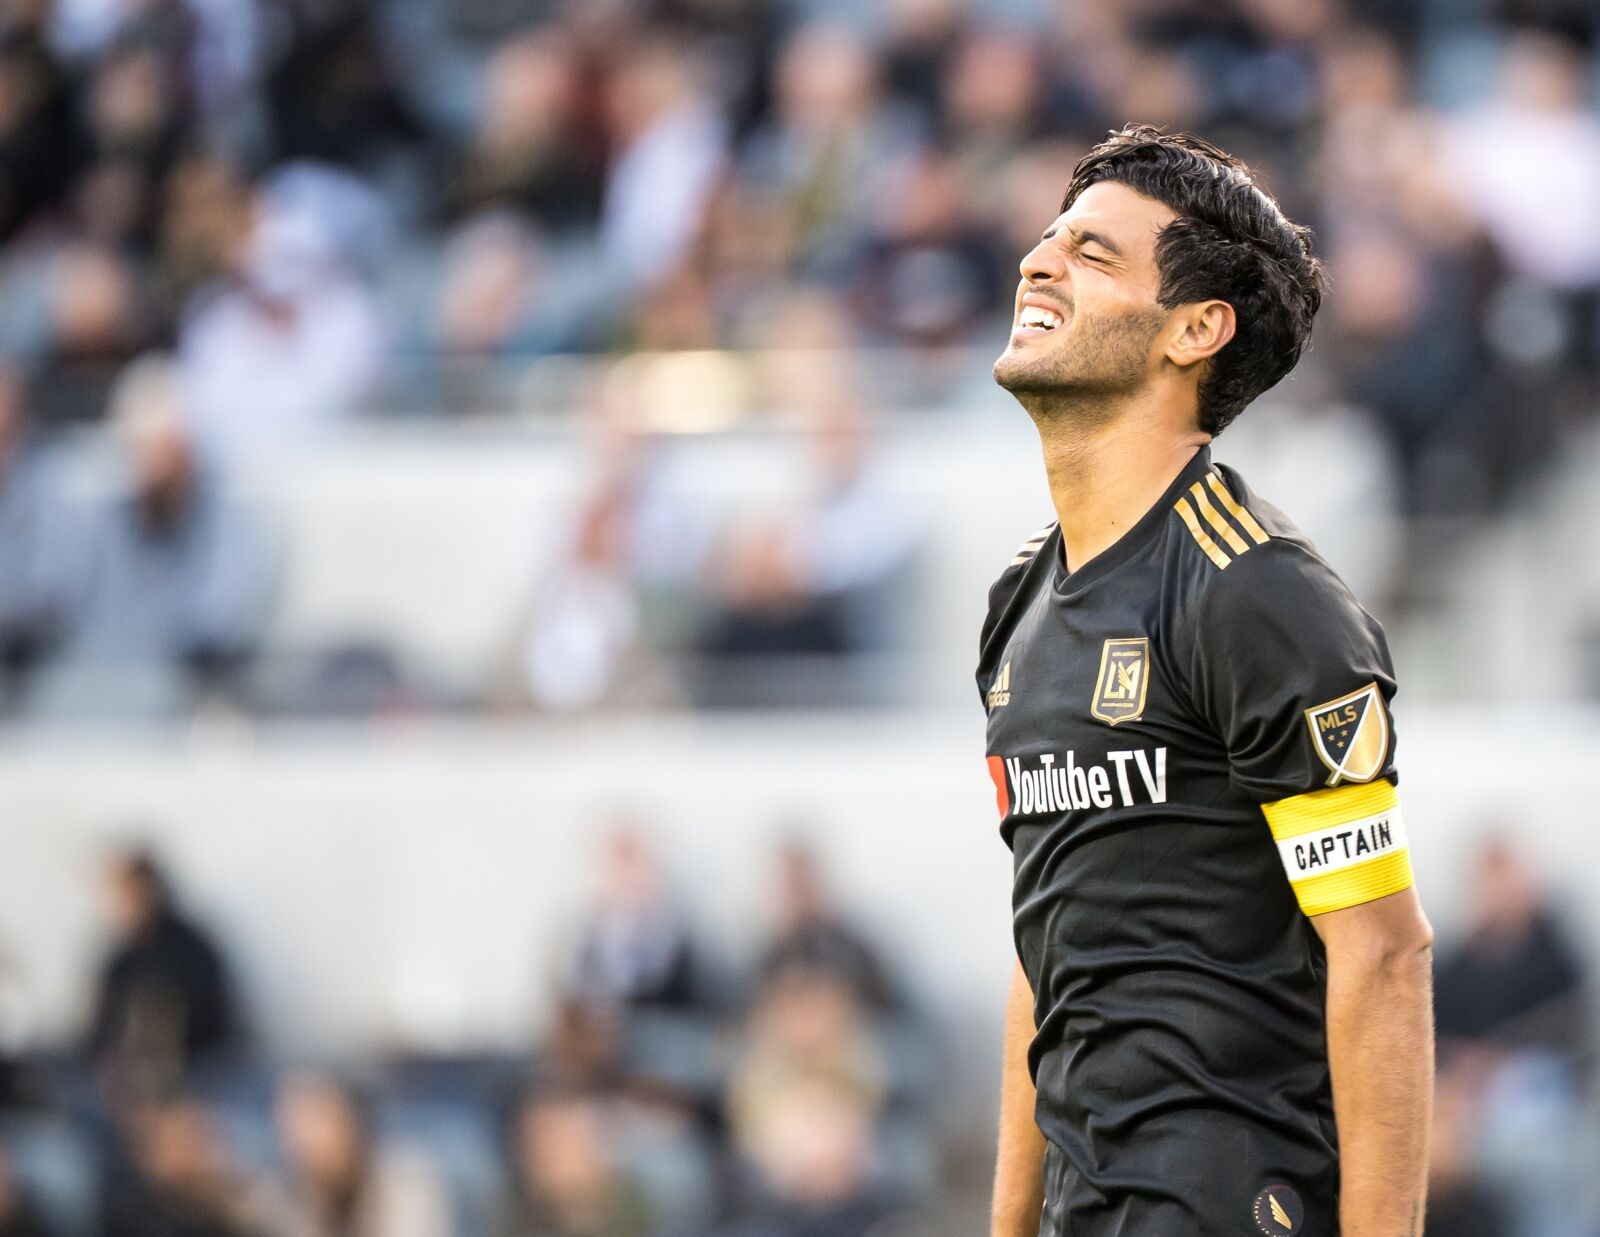 MLS: The best chance to end CONCACAF Champions League heartbreak